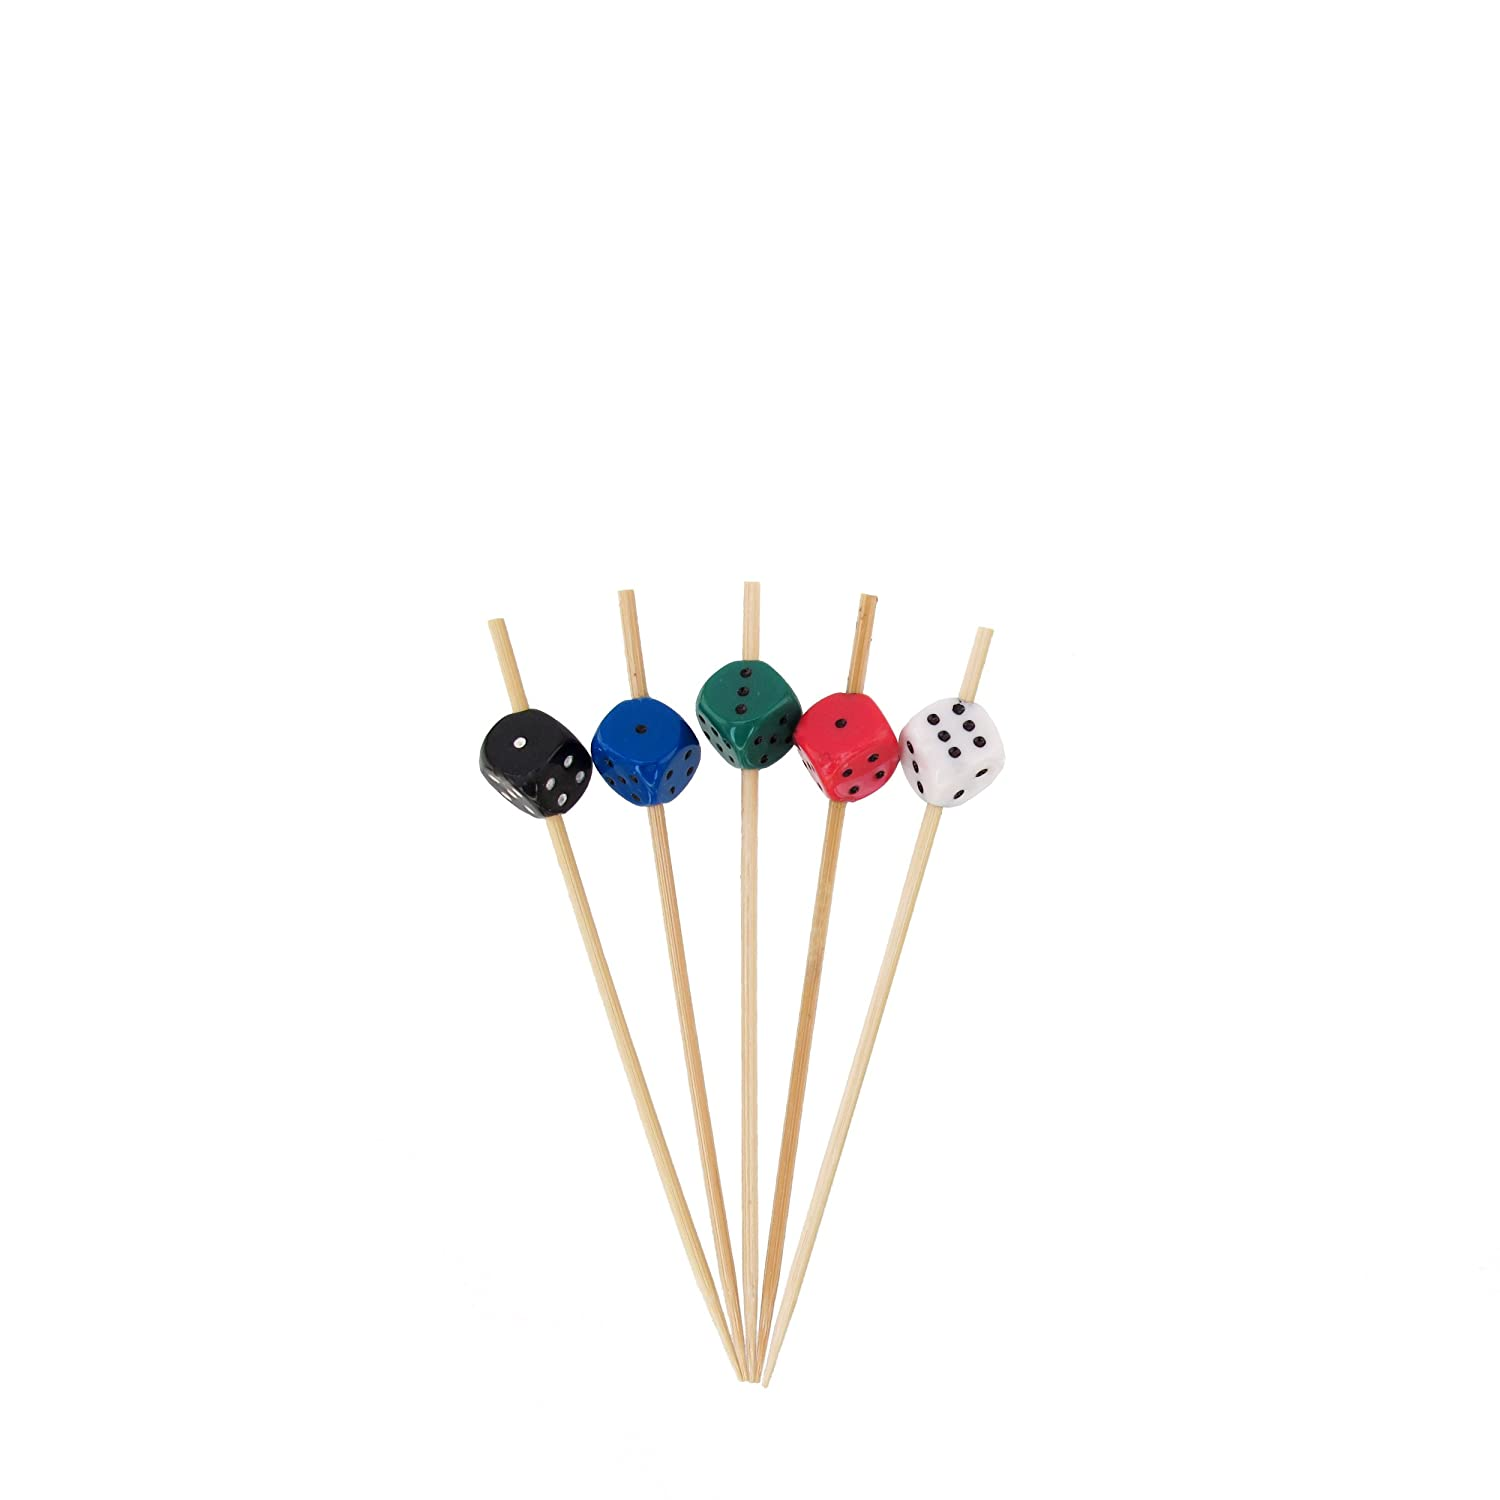 """BambooMN 3.9"""" Decorative Dice Party End Bamboo Cocktail Fruit Sandwich Picks Skewers for Catered Events, Holiday's, Restaurants or Buffets Party Supplies, Assortment, 100 Pieces"""